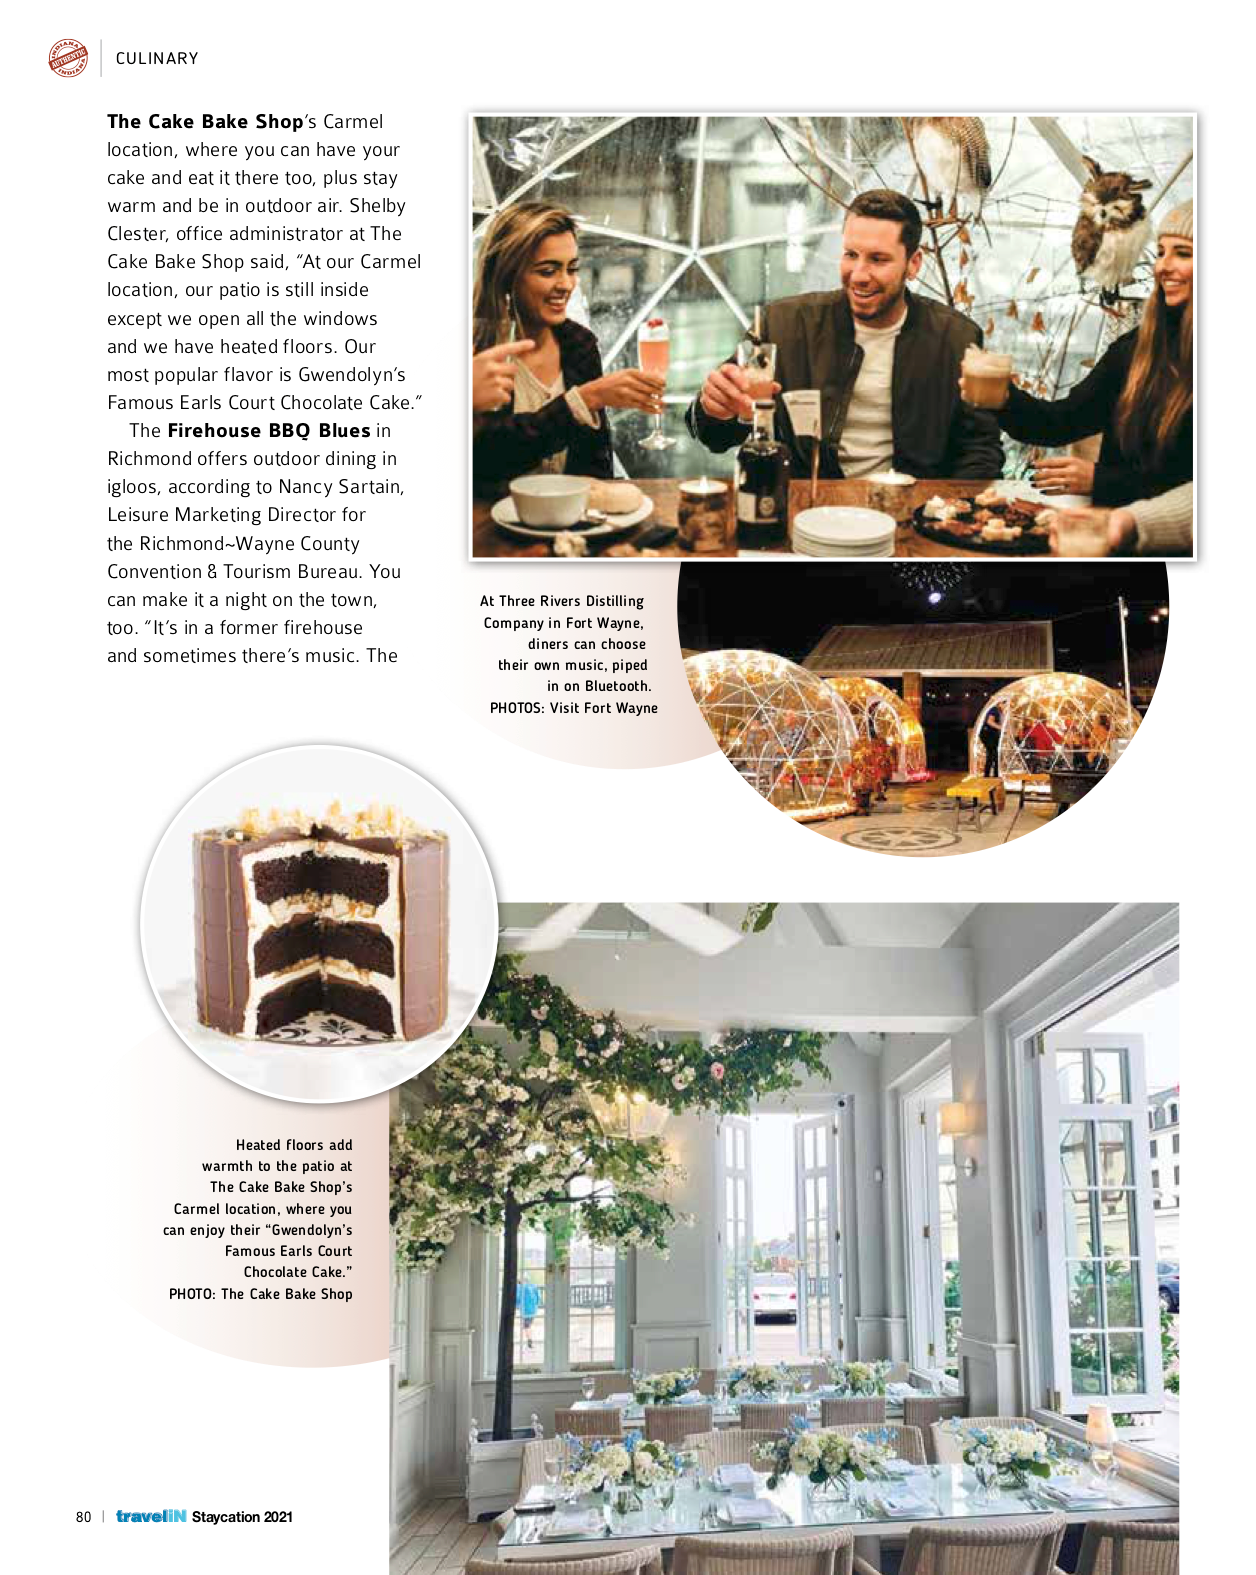 The Cake Bake Shop 'Top Outdoor Dining Spot' Travel Indiana Magazine January 2021